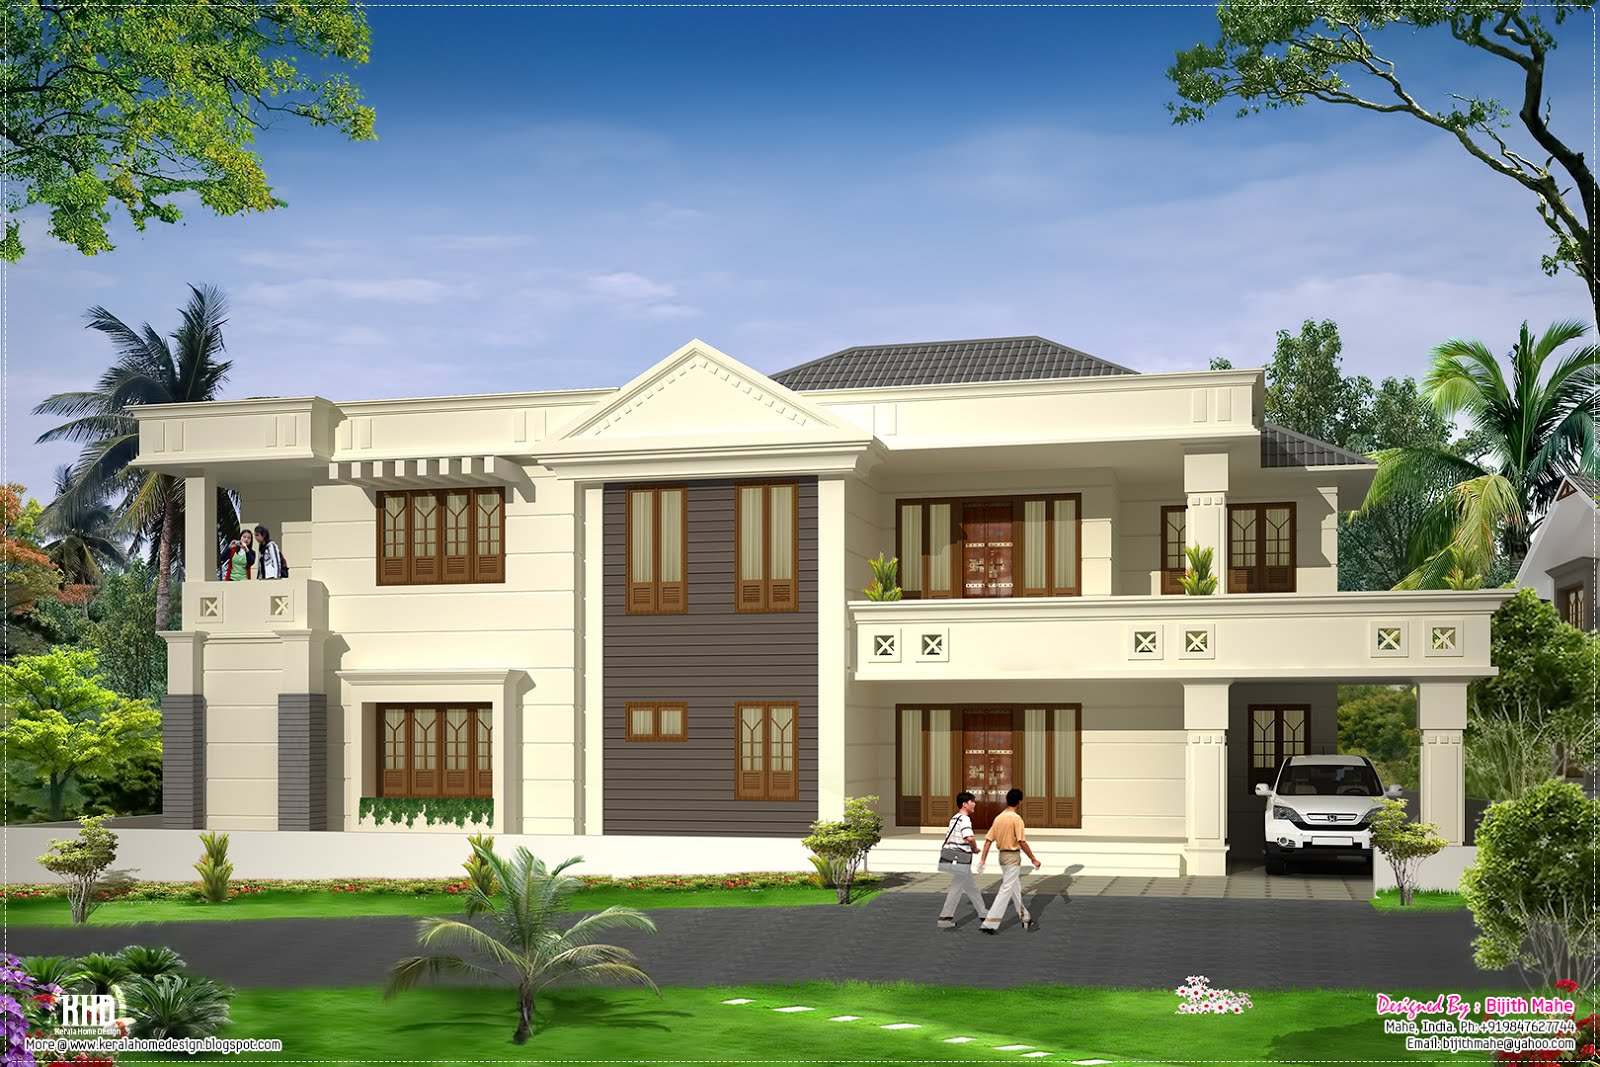 Modern luxury home design kerala home design and floor plans for Modern luxury house design